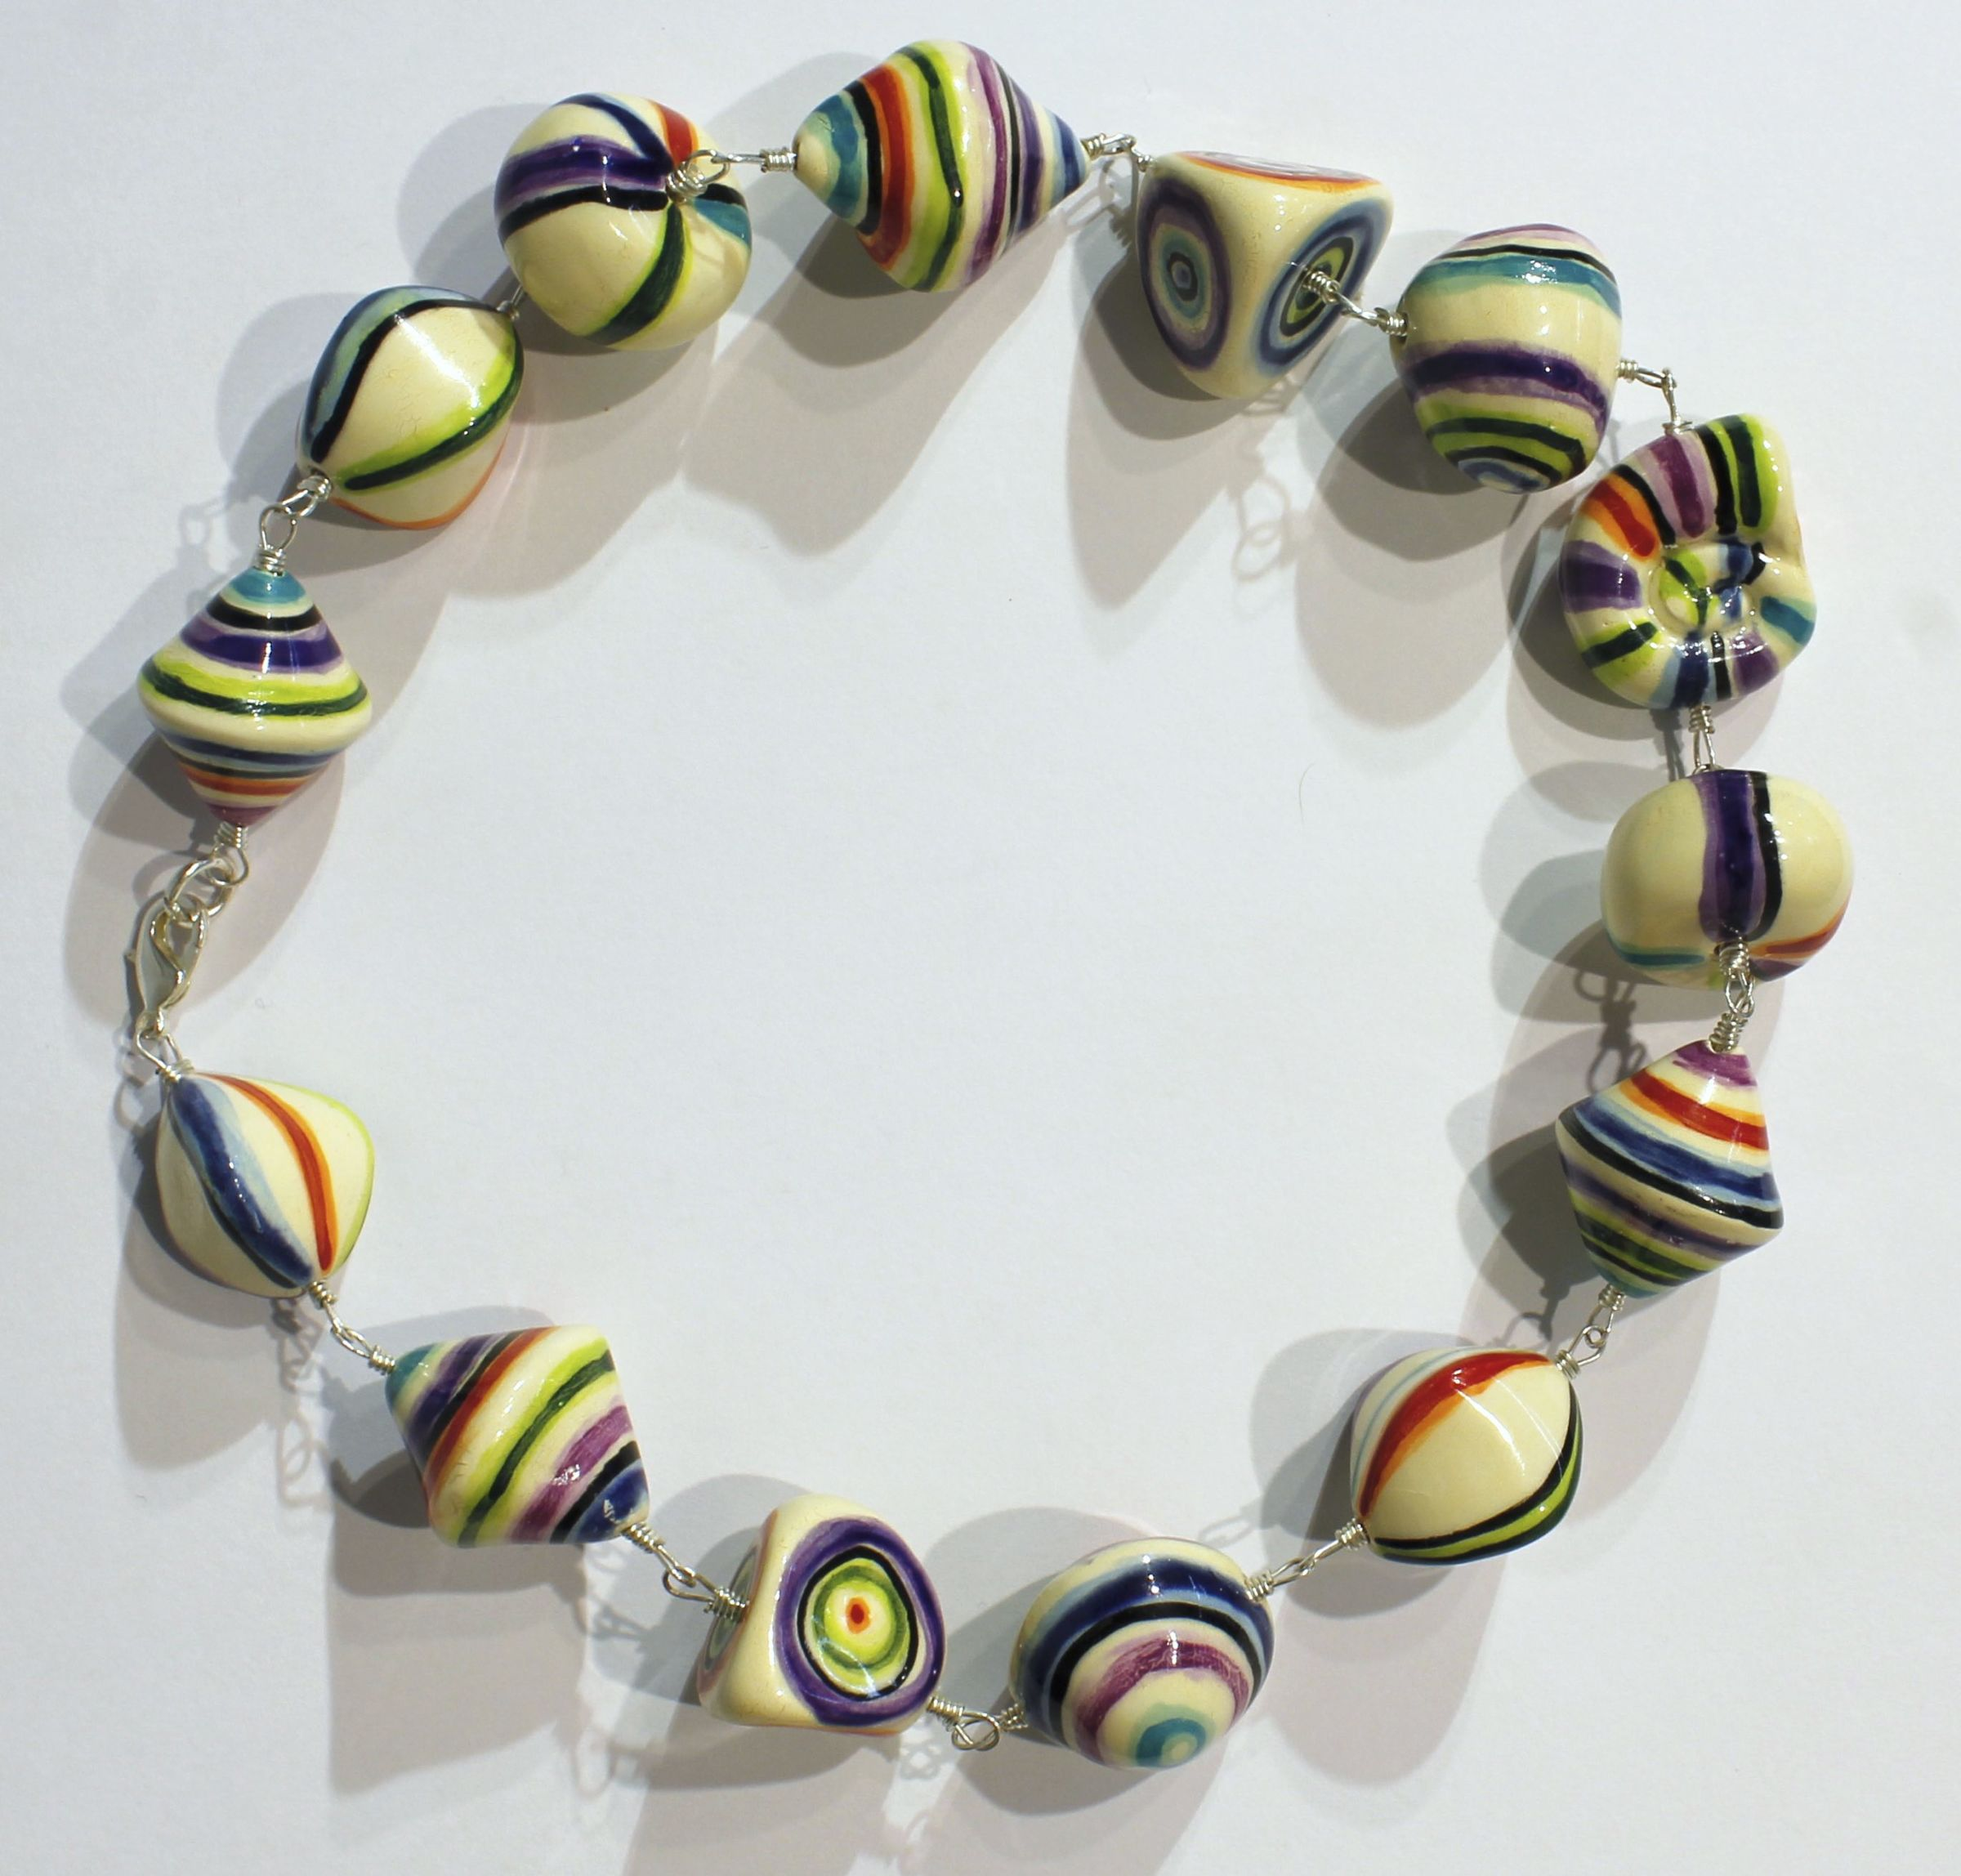 "<span class=""link fancybox-details-link""><a href=""/artists/146-elinor-lamond/works/4913-elinor-lamond-rainbow-striped-necklace-2017/"">View Detail Page</a></span><div class=""artist""><strong>Elinor Lamond</strong></div> <div class=""title""><em>Rainbow Striped Necklace </em>, 2017</div> <div class=""medium"">handmade ceramic beads</div><div class=""copyright_line"">Copyright The Artist</div>"